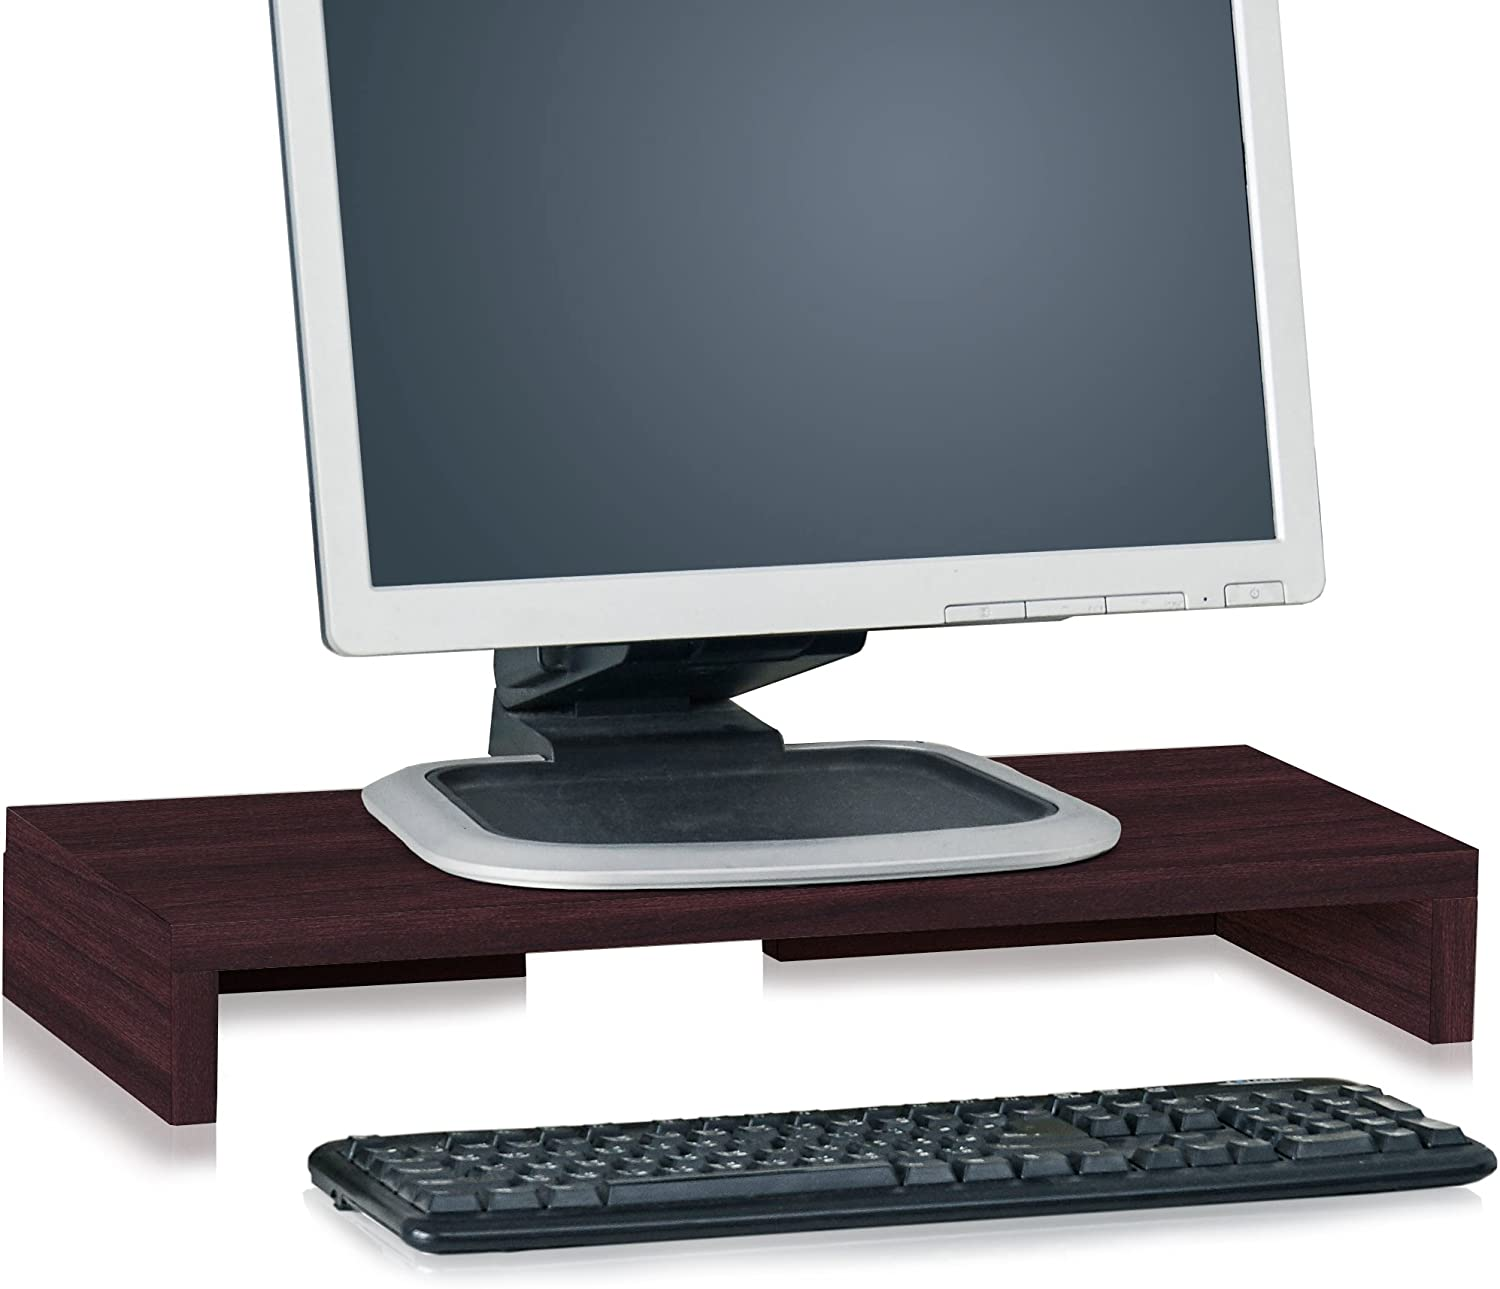 Way Basics TV PC Desktop Modern Computer Monitor Stand Screen Riser (Tool-Free Assembly and Uniquely Crafted from Sustainable Non Toxic zBoard Paperboard), Espresso Wood Grain